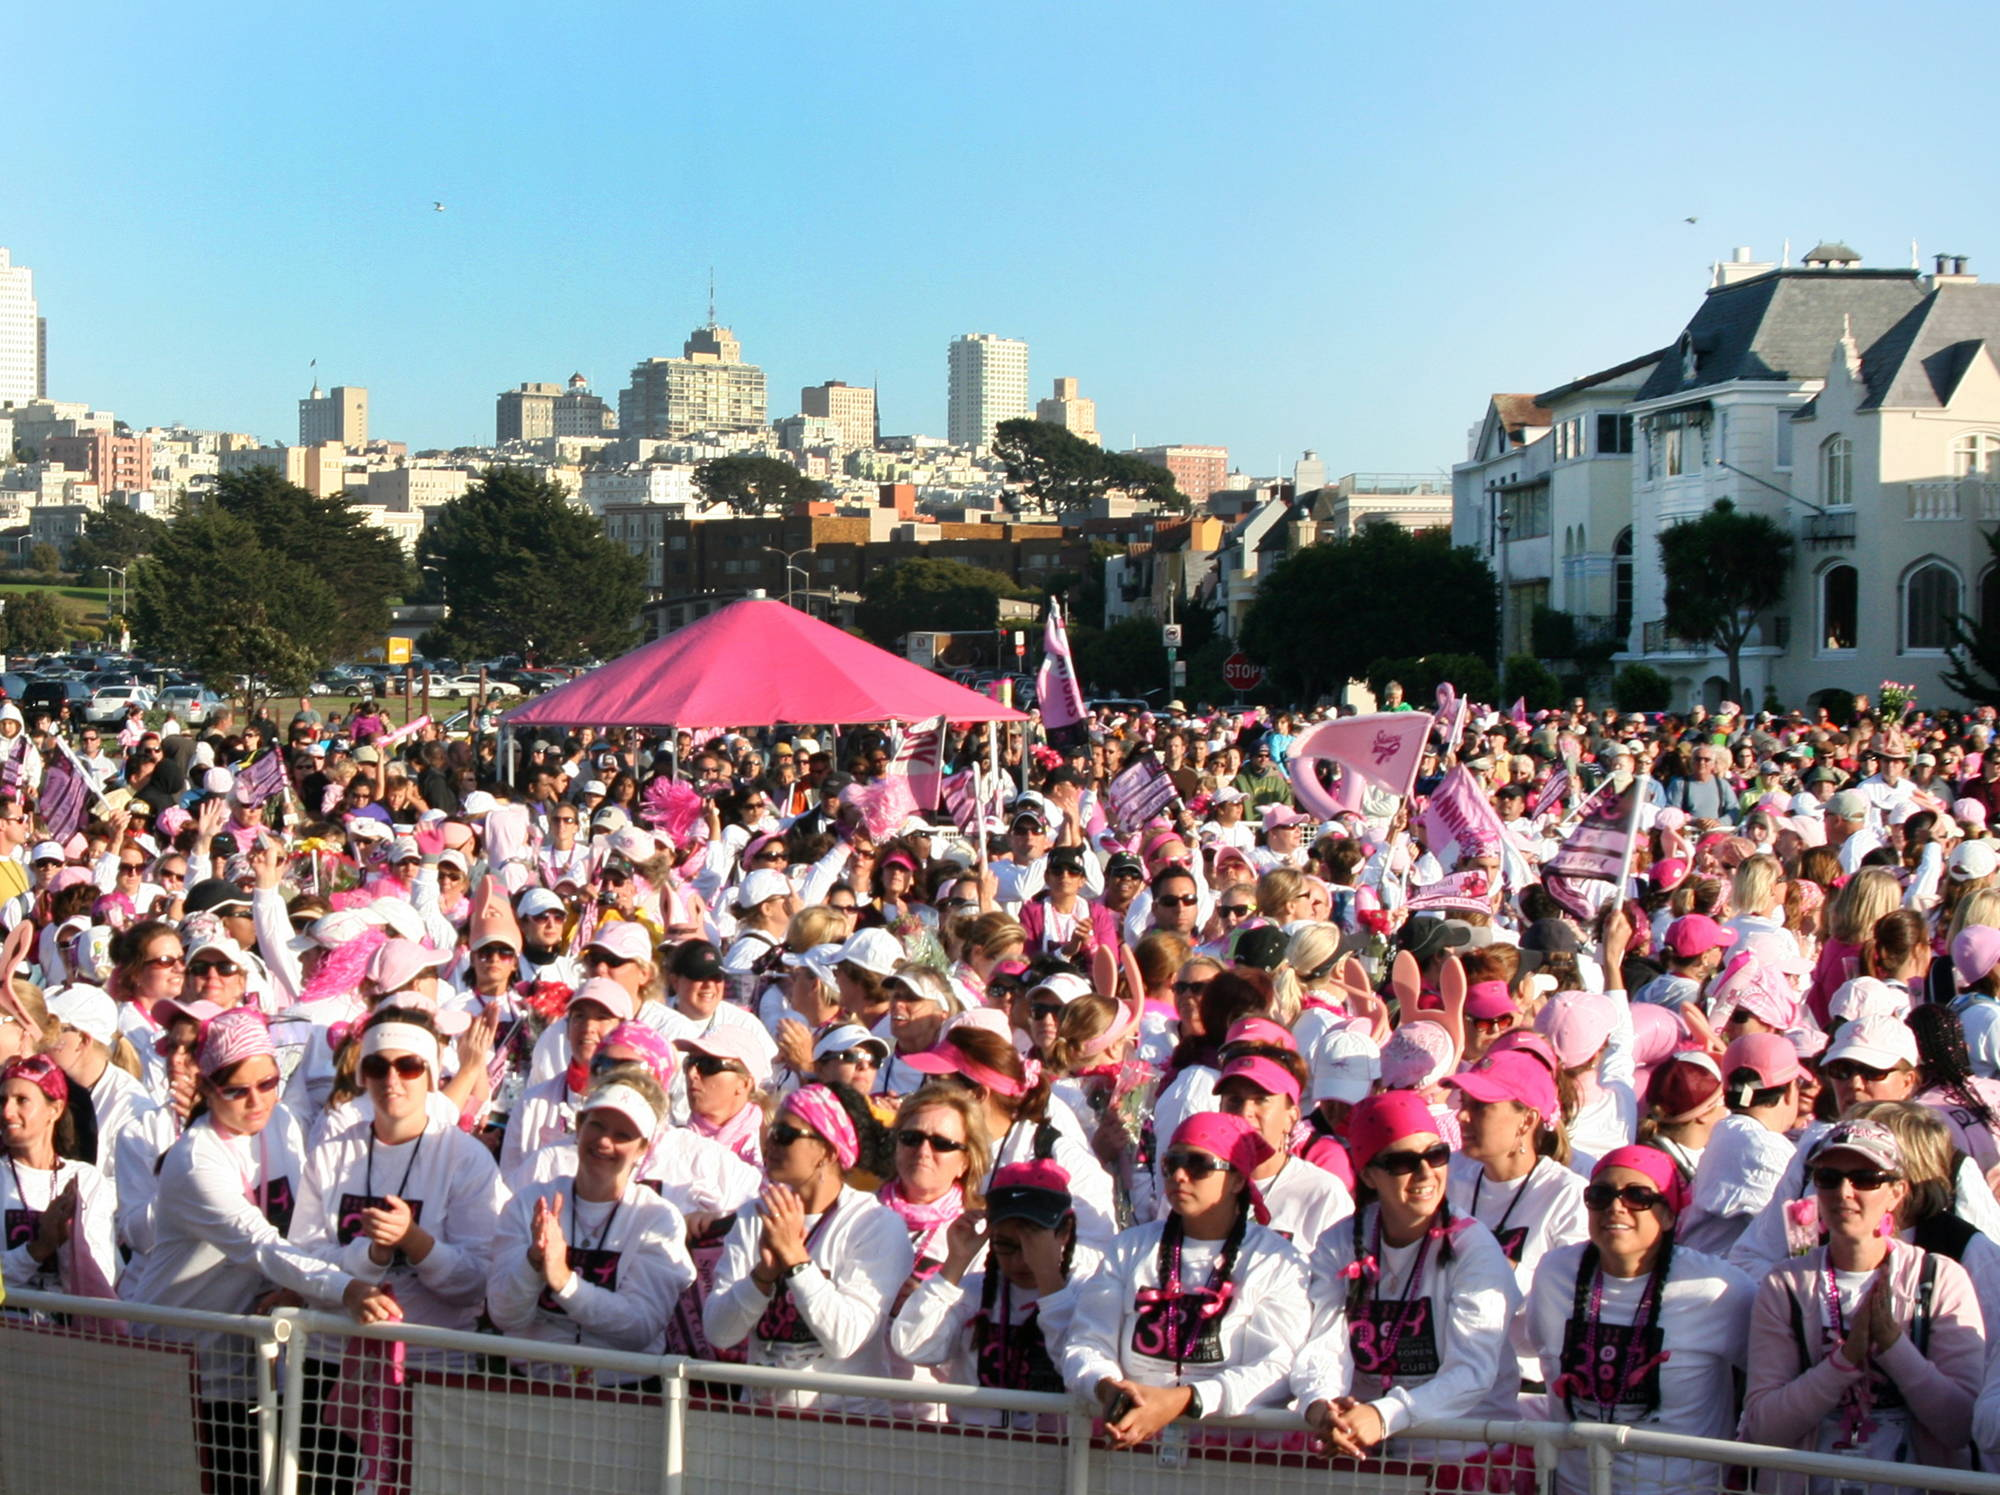 large crowd of supporters wearing pink at a breast cancer awareness event in streets of San Francisco